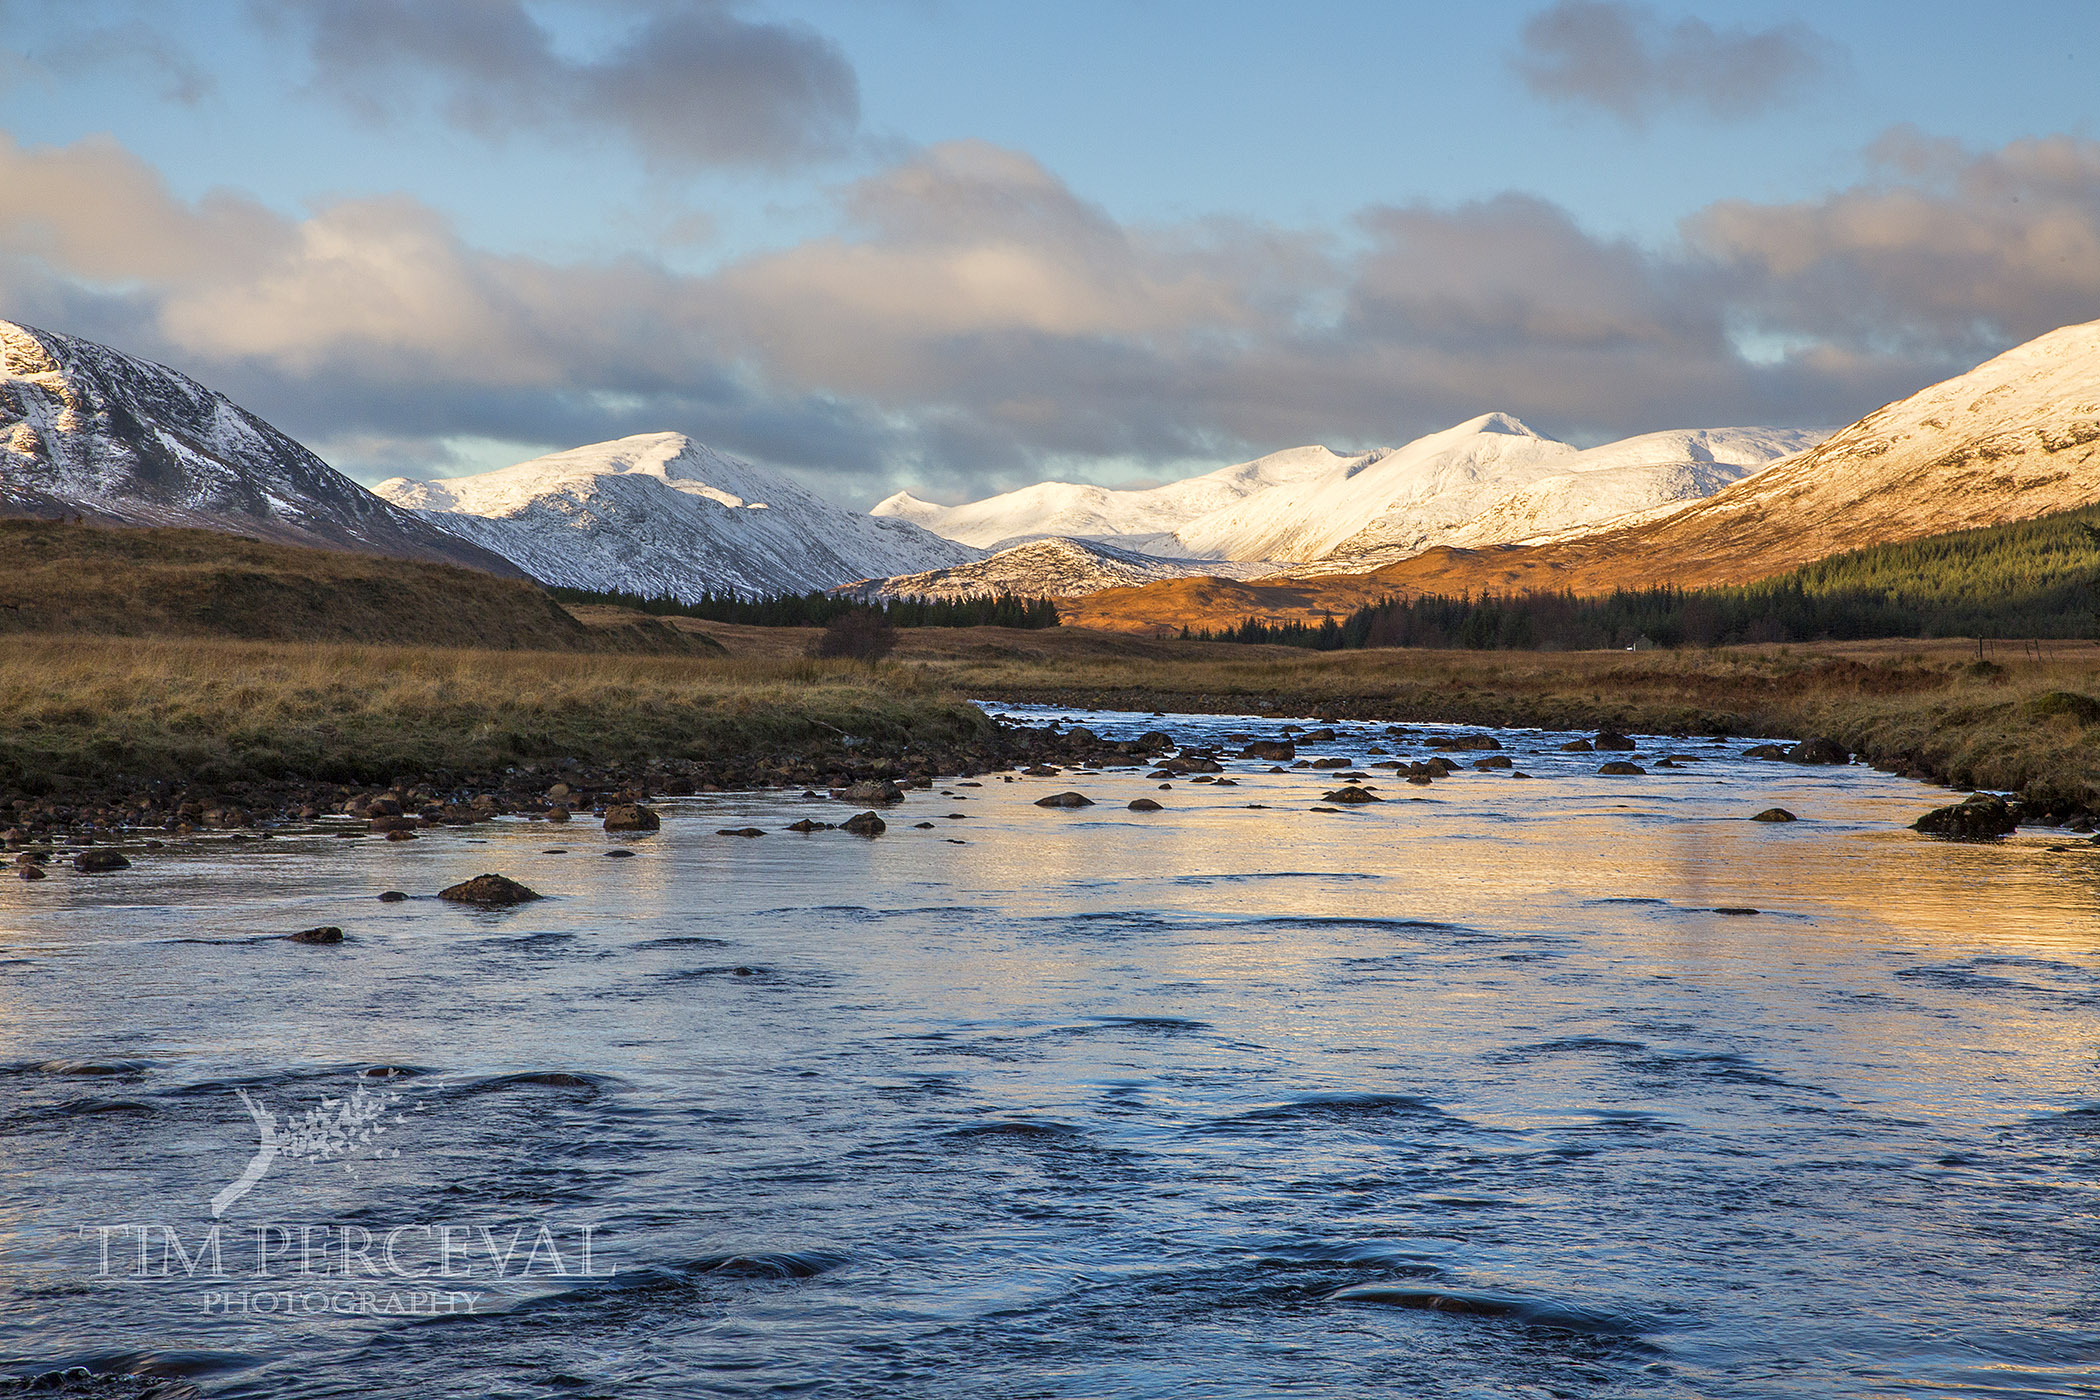 Reflections on Abhain Shira overlooking the mountain range of Stob Ghabhar at Dawn